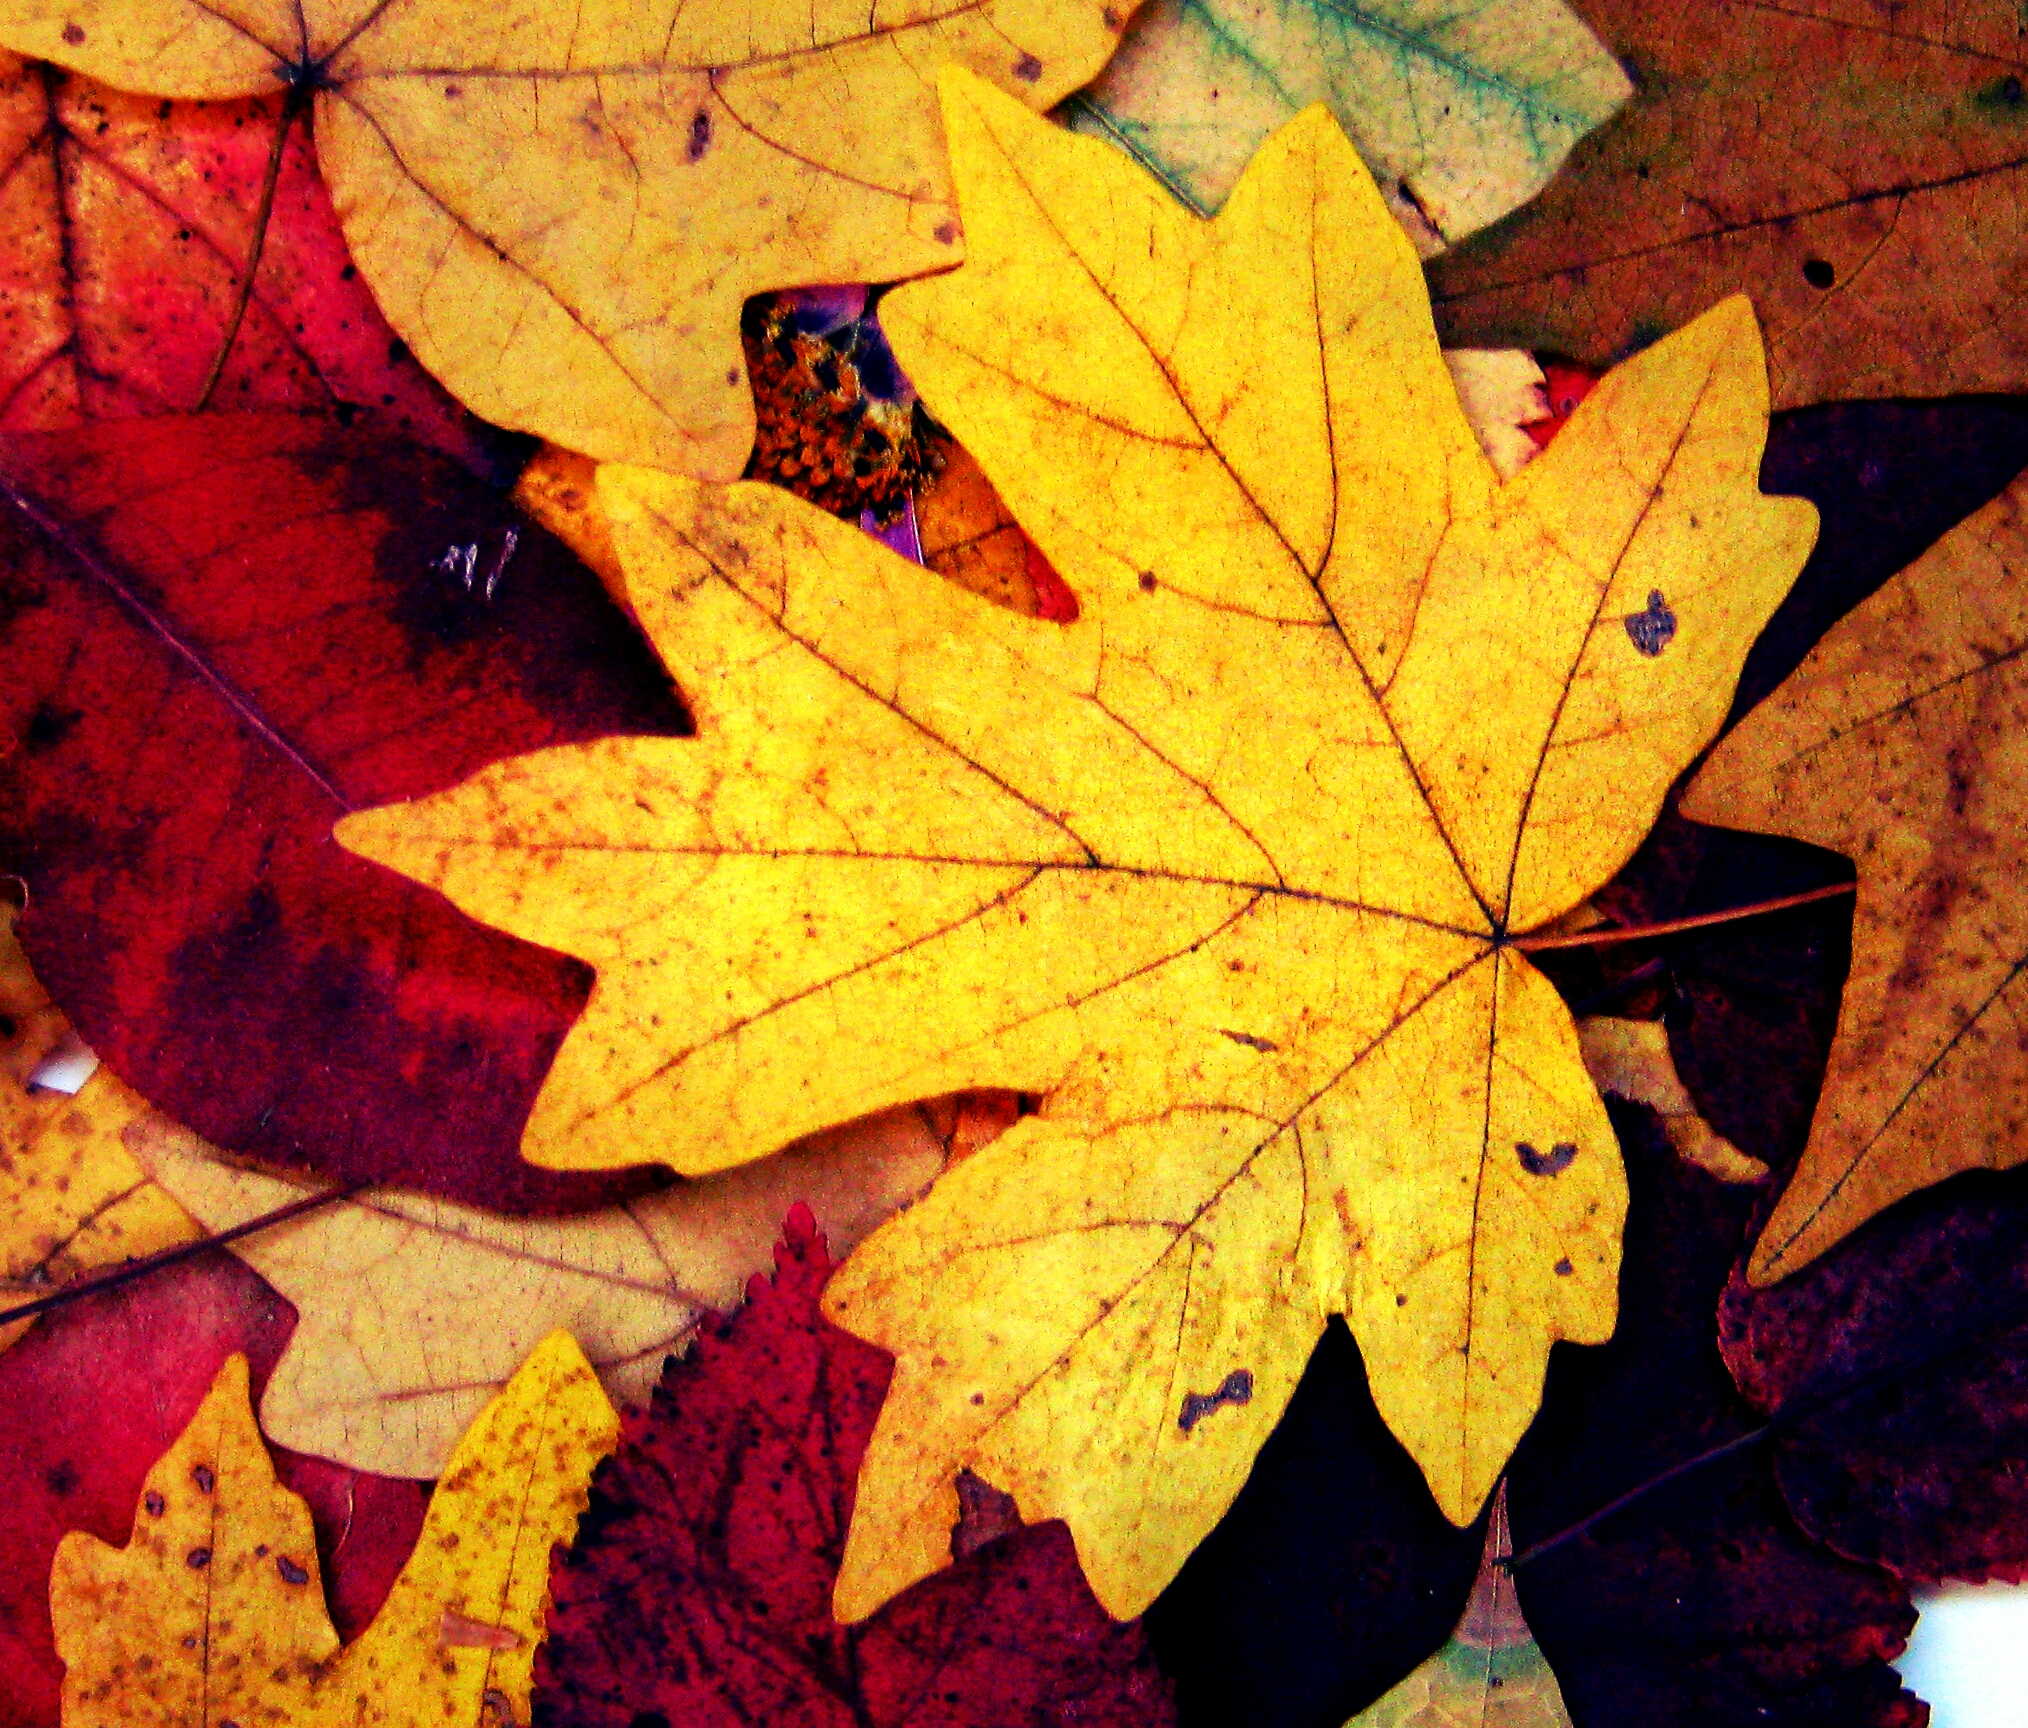 autumn leaves The latest tweets from autumn leaves (@autumnleaves) family owned & operated memory care communities dedicated to the compassionate care & well-being of those living with alzheimer's and other forms of dementia.